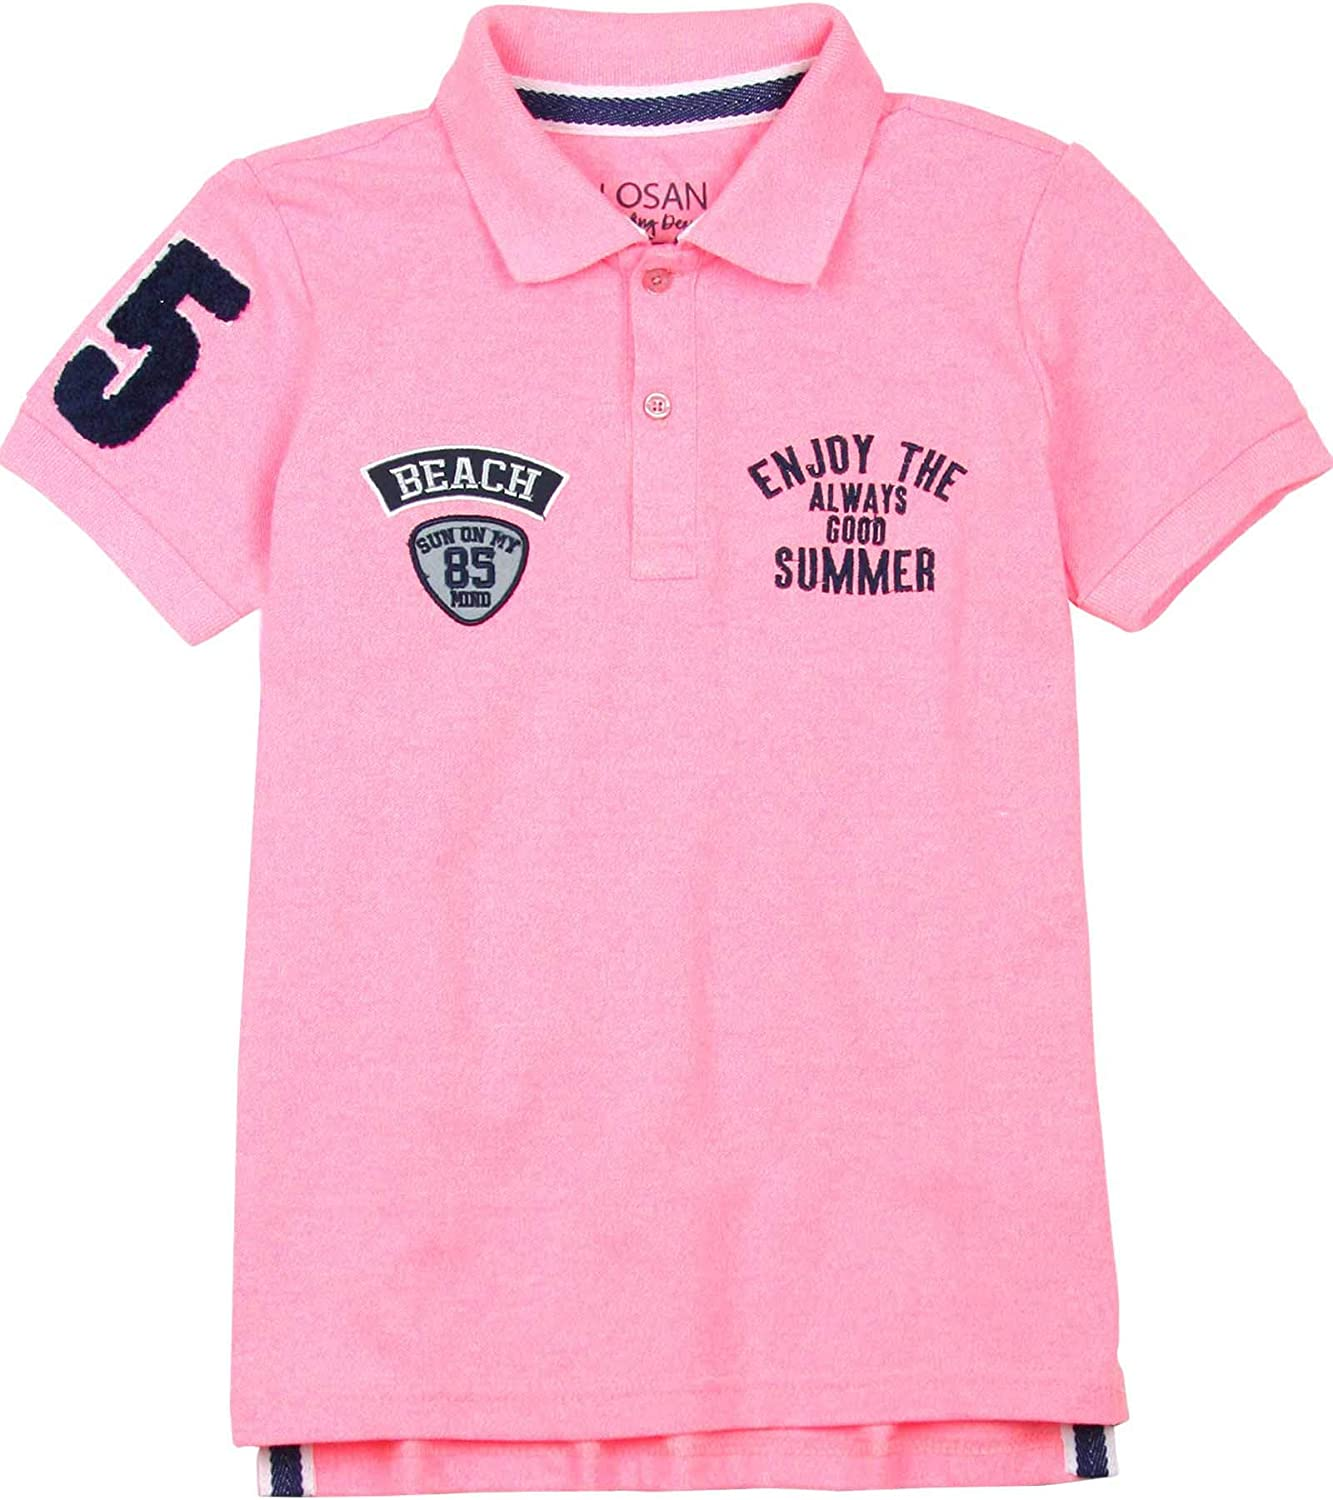 Losan Boys Polo Shirt with Patches, Sizes 8-16